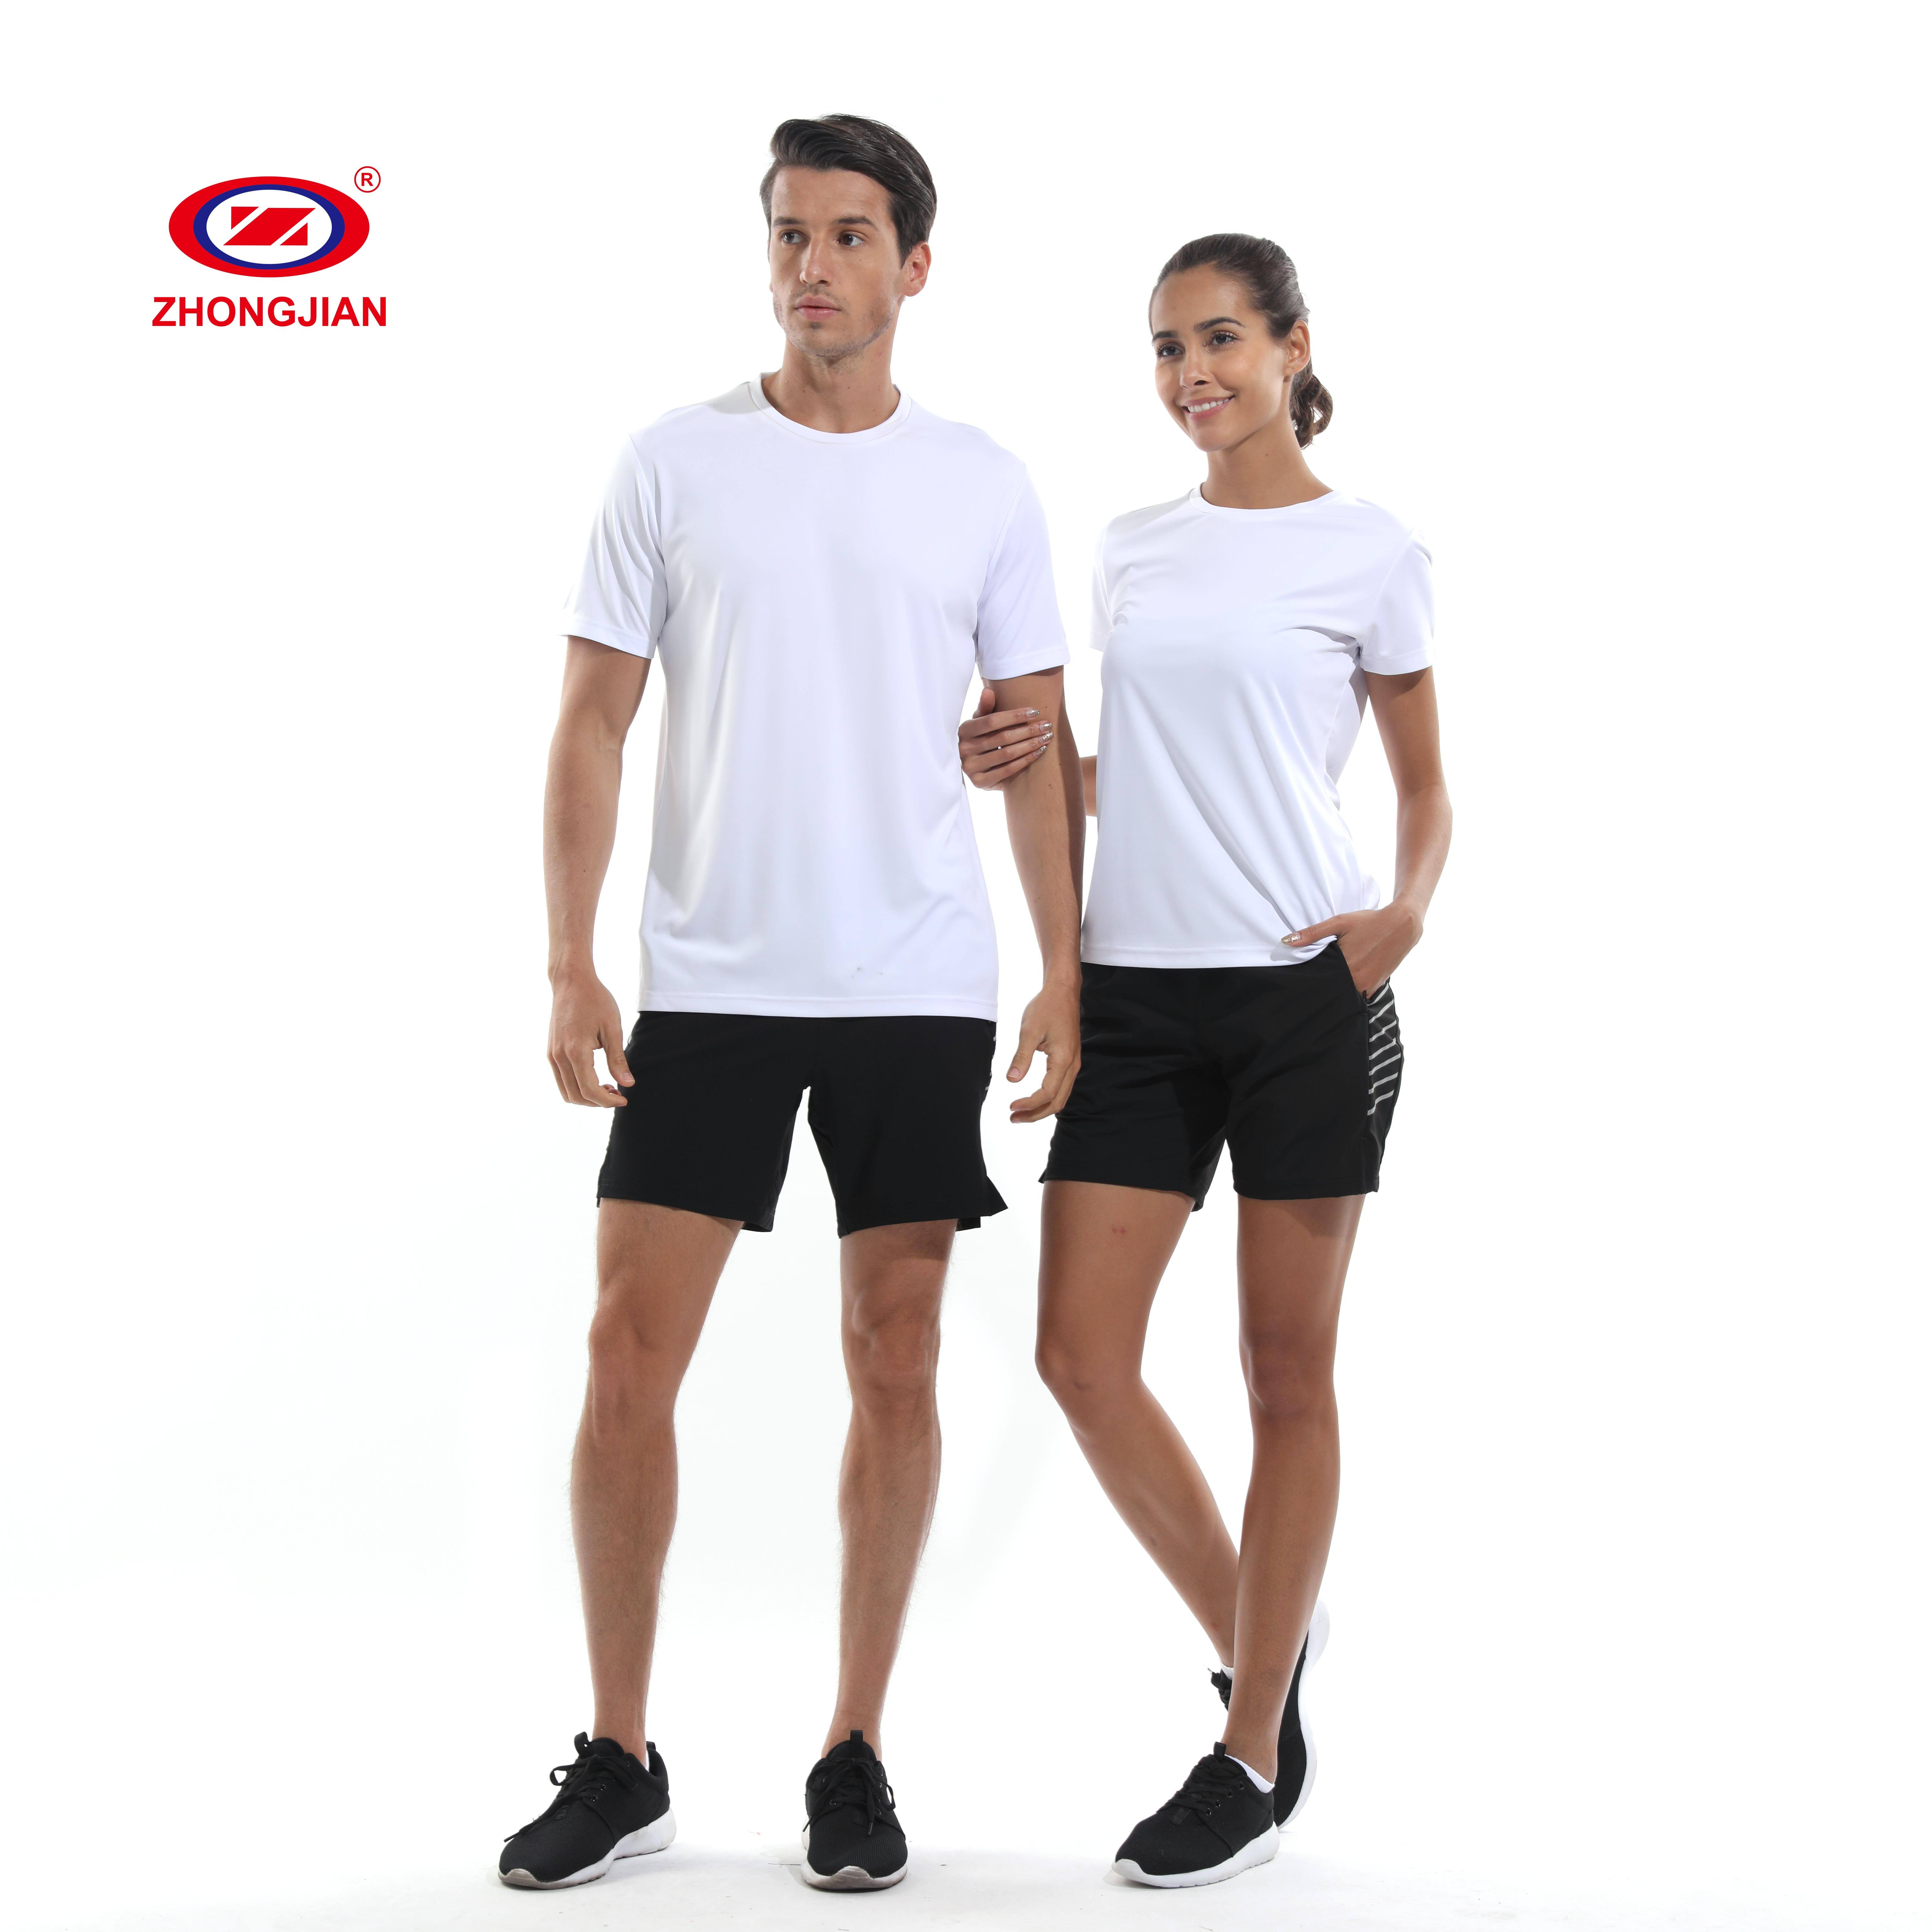 tennis running wear casual men's t-shirts compressed push up top sport shirts